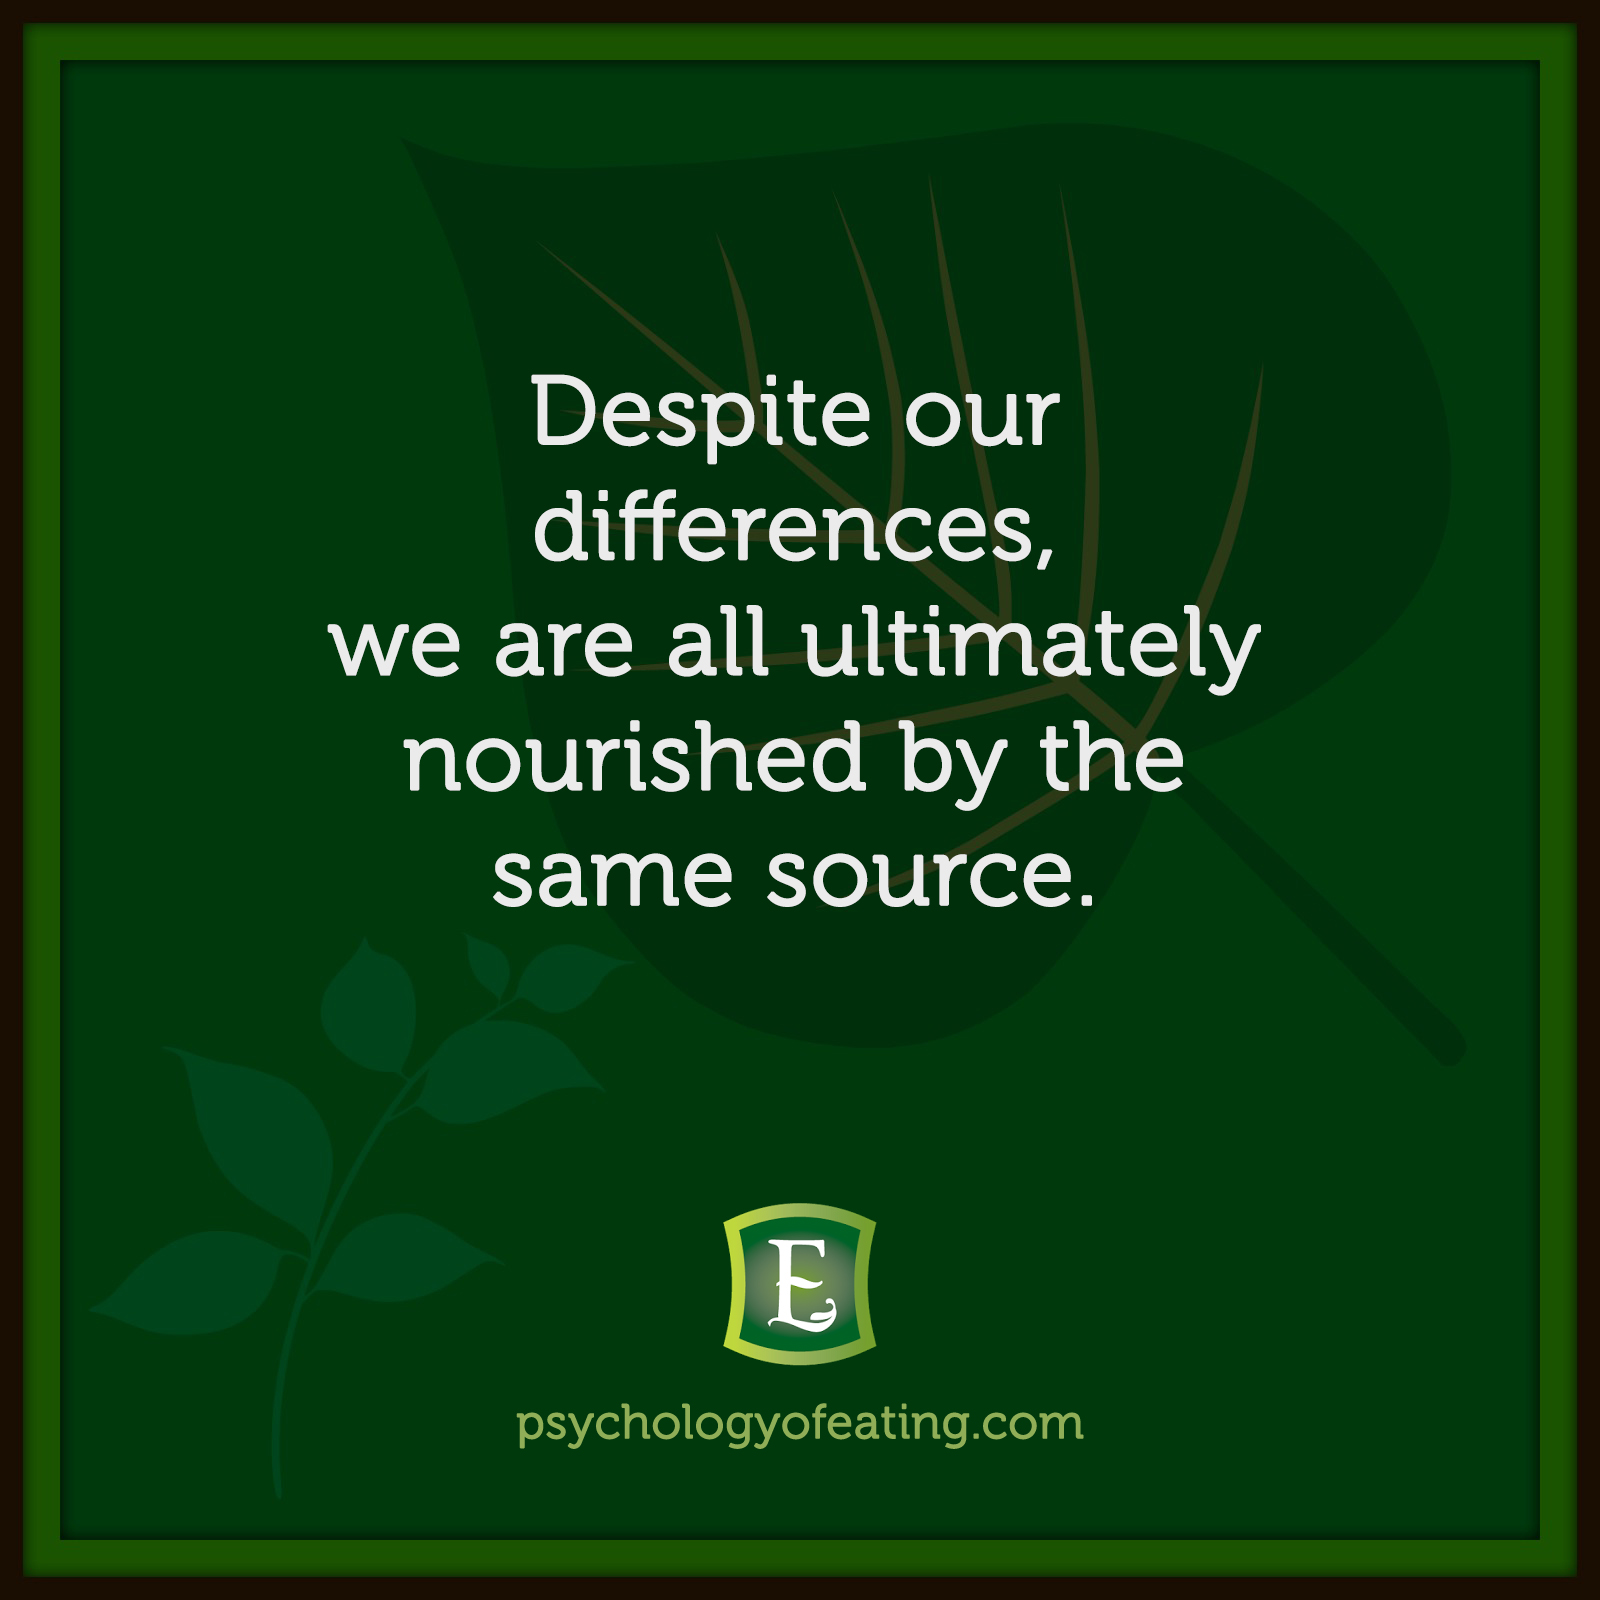 Despite our differences, we are all ultimately nourished by the same source. #health #nutrition #eatingpsychology #IPE